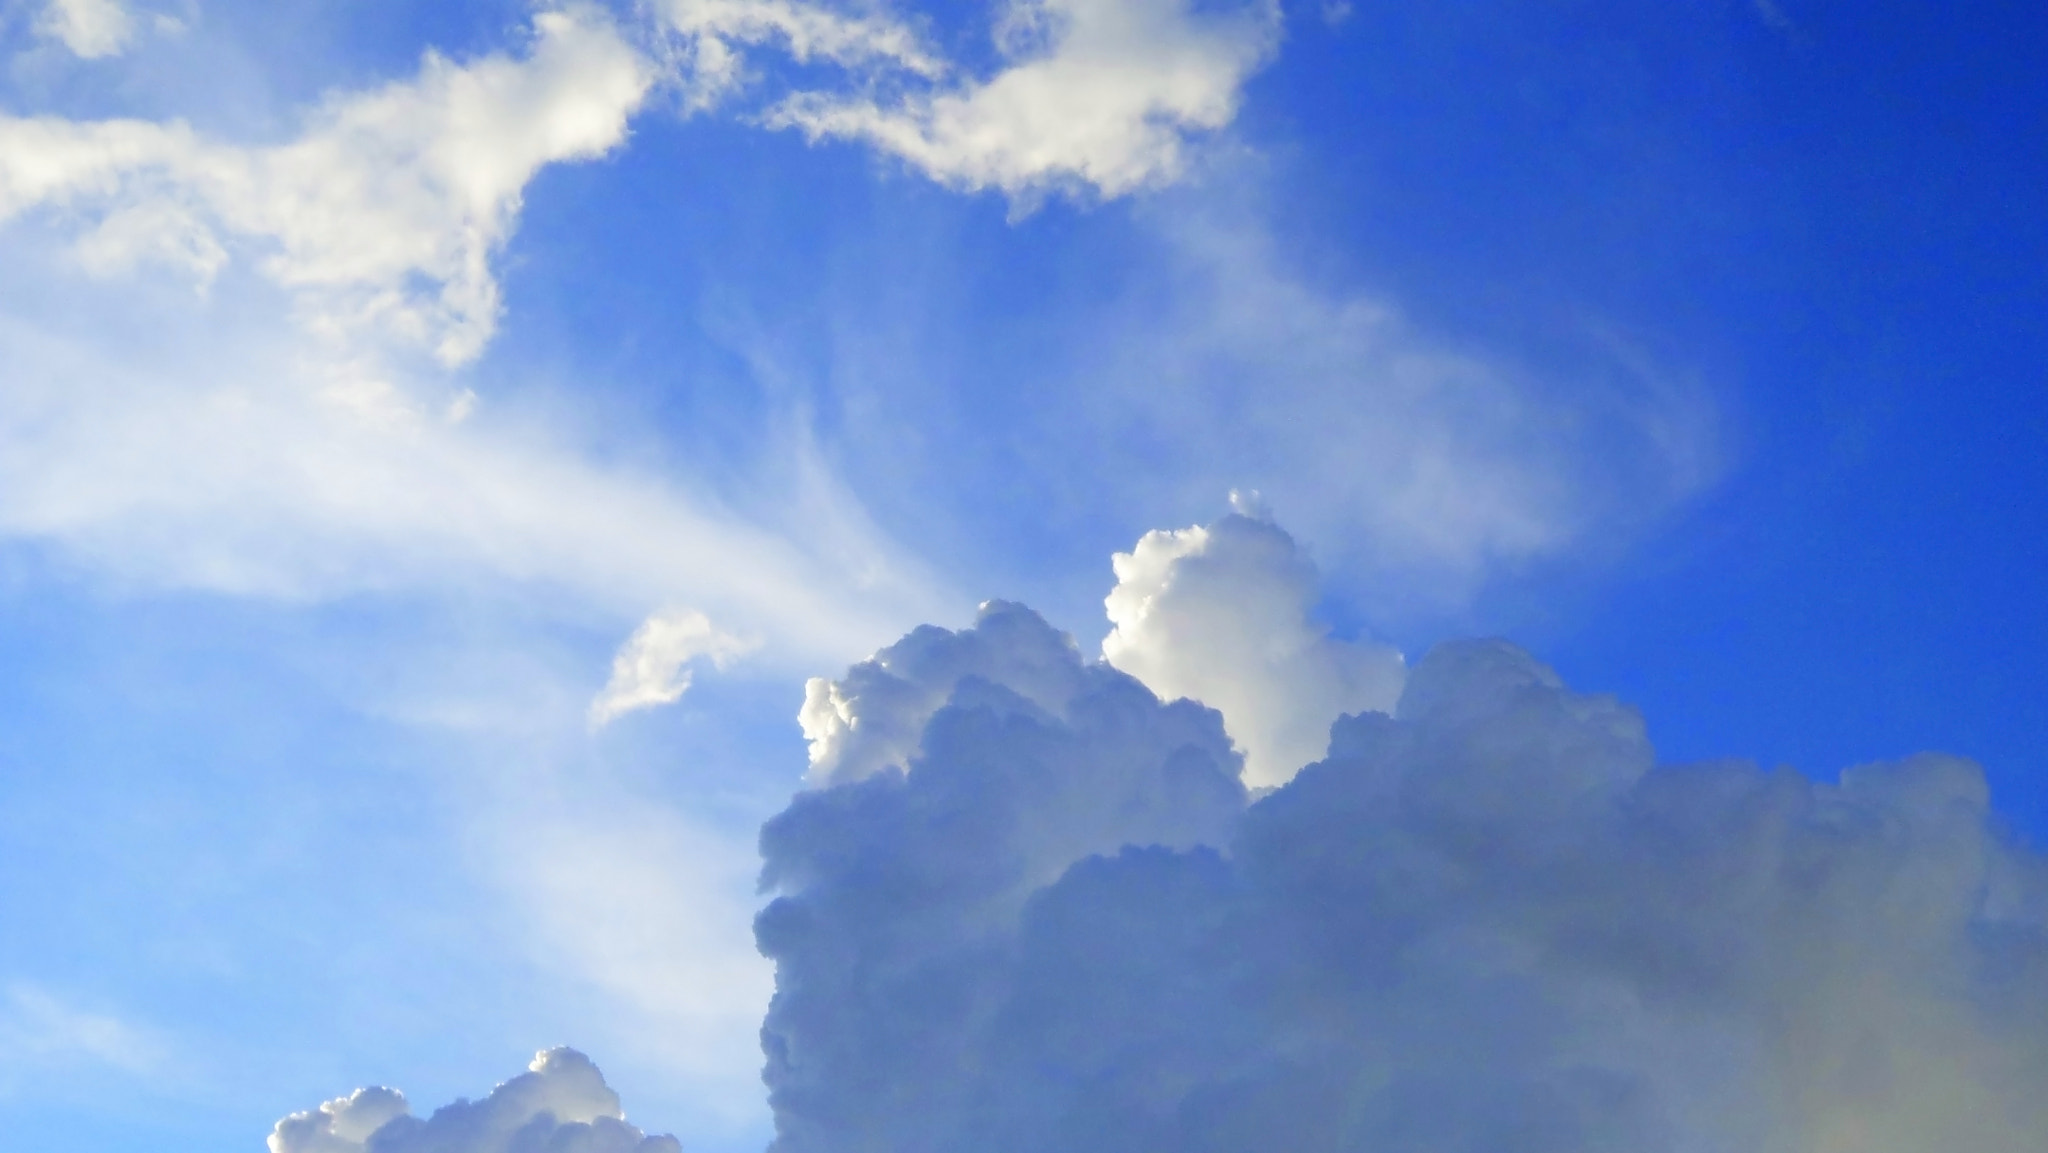 Photograph Beauty Of Clouds by Upakul Dutta on 500px